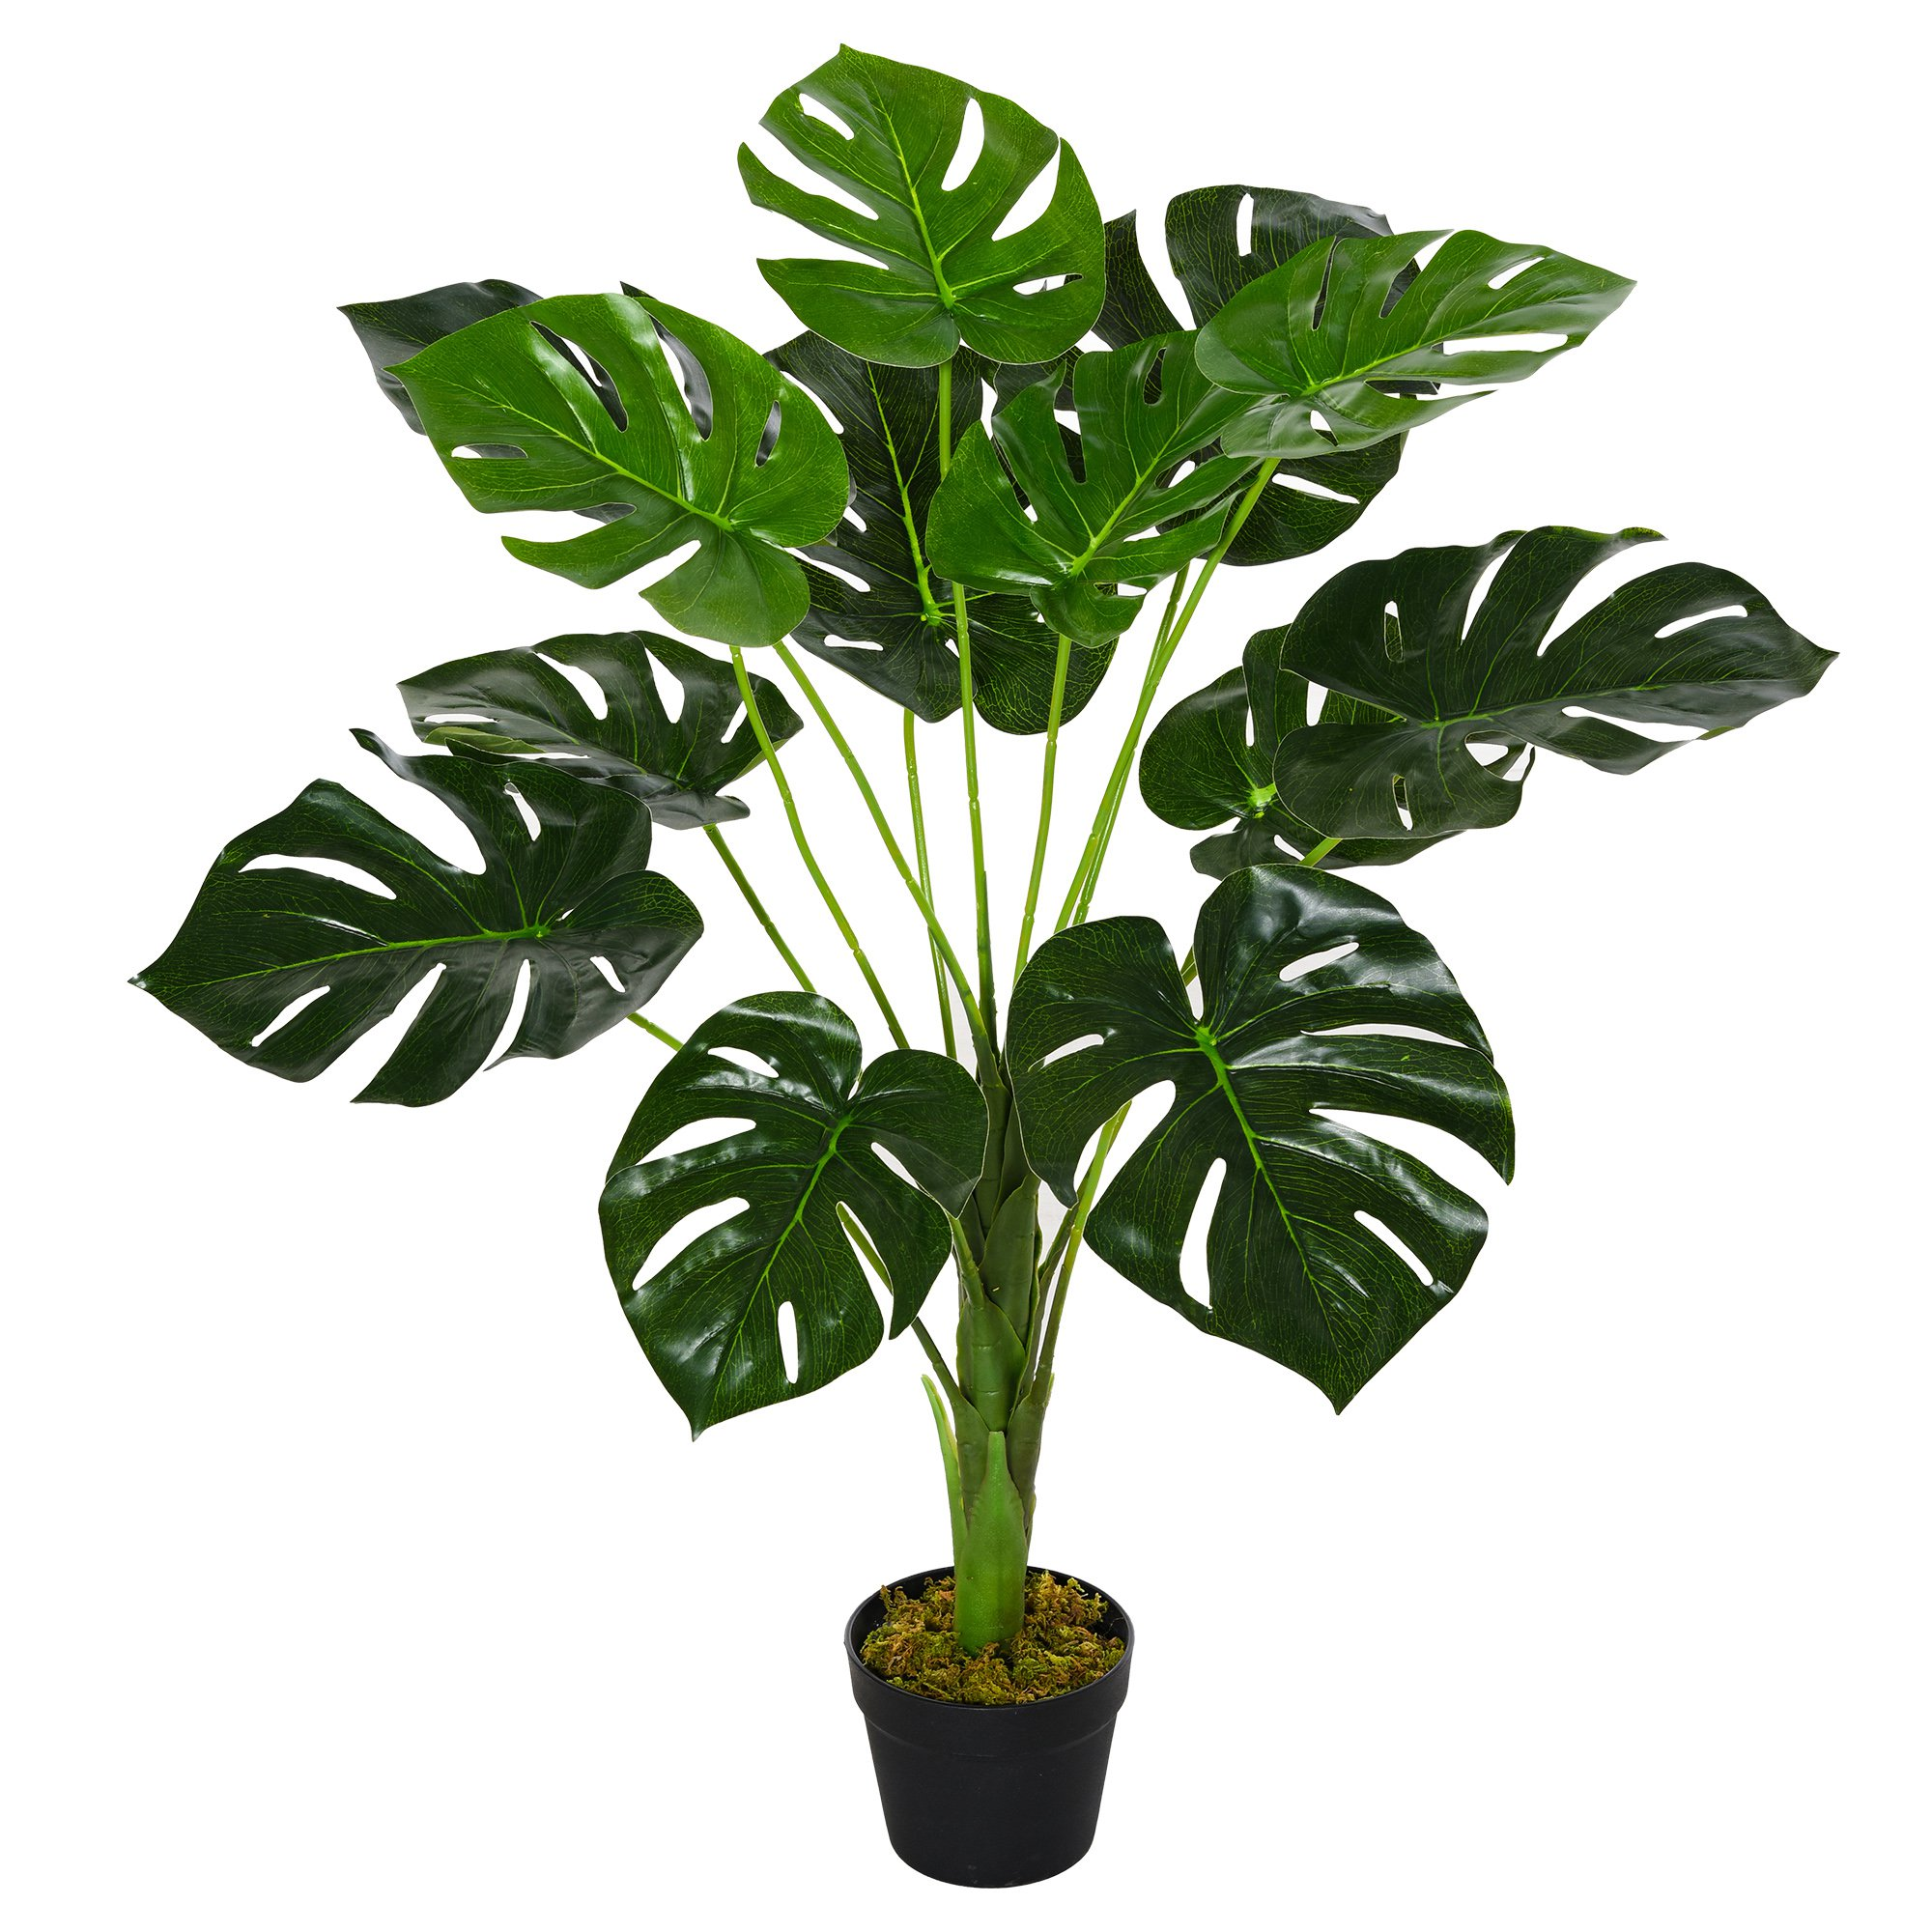 Outsunny Monstera Artificiale 13 Foglie e Vaso Alta 85cm per Interno ed Esterno